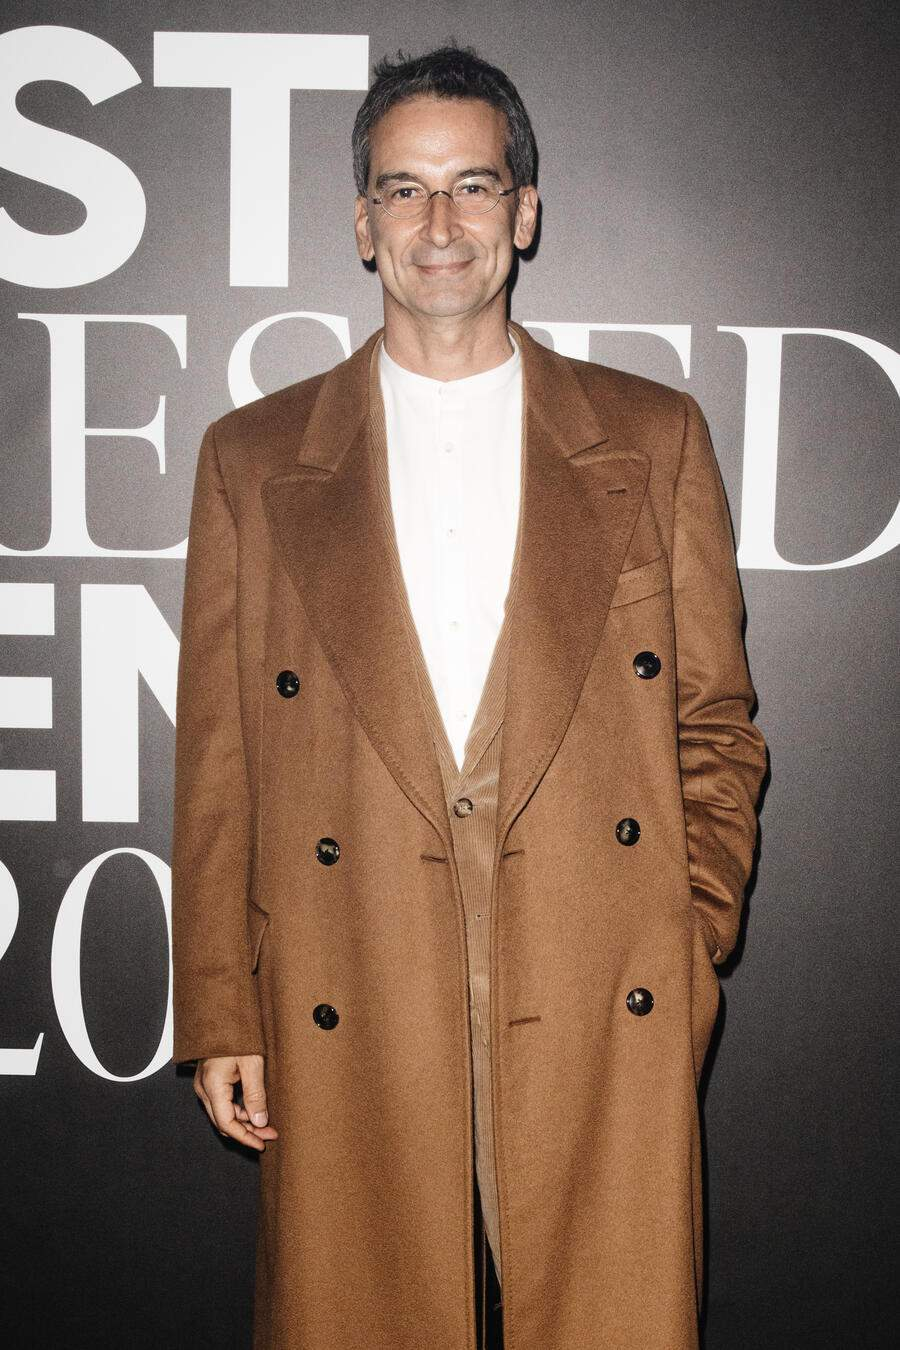 MILAN, ITALY - JANUARY 10: Federico Marchetti attends the GQ Best Dressed Man 2020 on January 10, 2020 in Milan, Italy. (Photo by Rosdiana Ciaravolo/Getty Images)